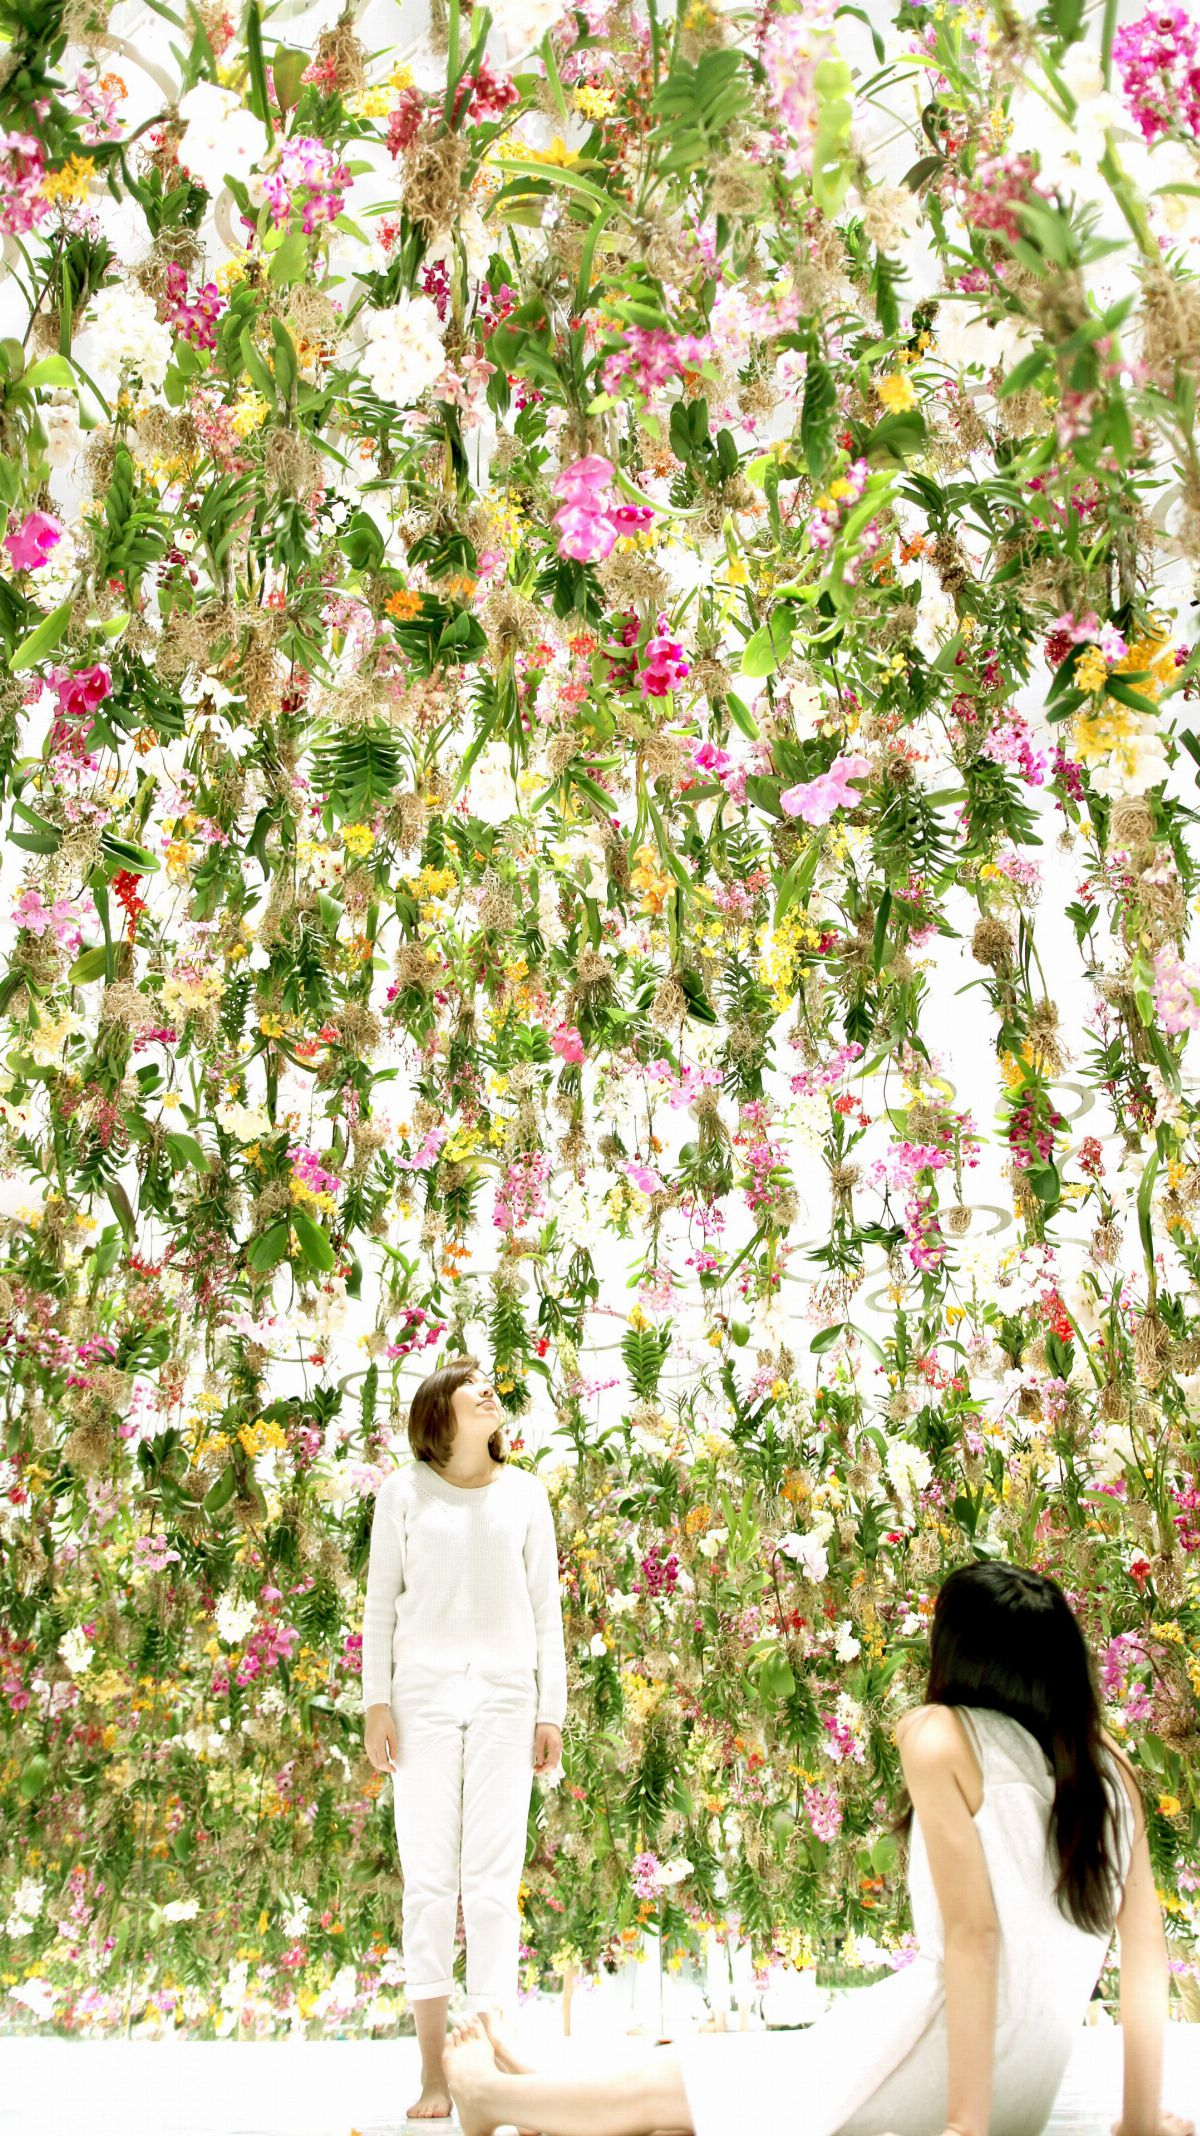 Floating Flower Garden Flowers And I Are Of The Same Root The Garden And I Are One Teamlab